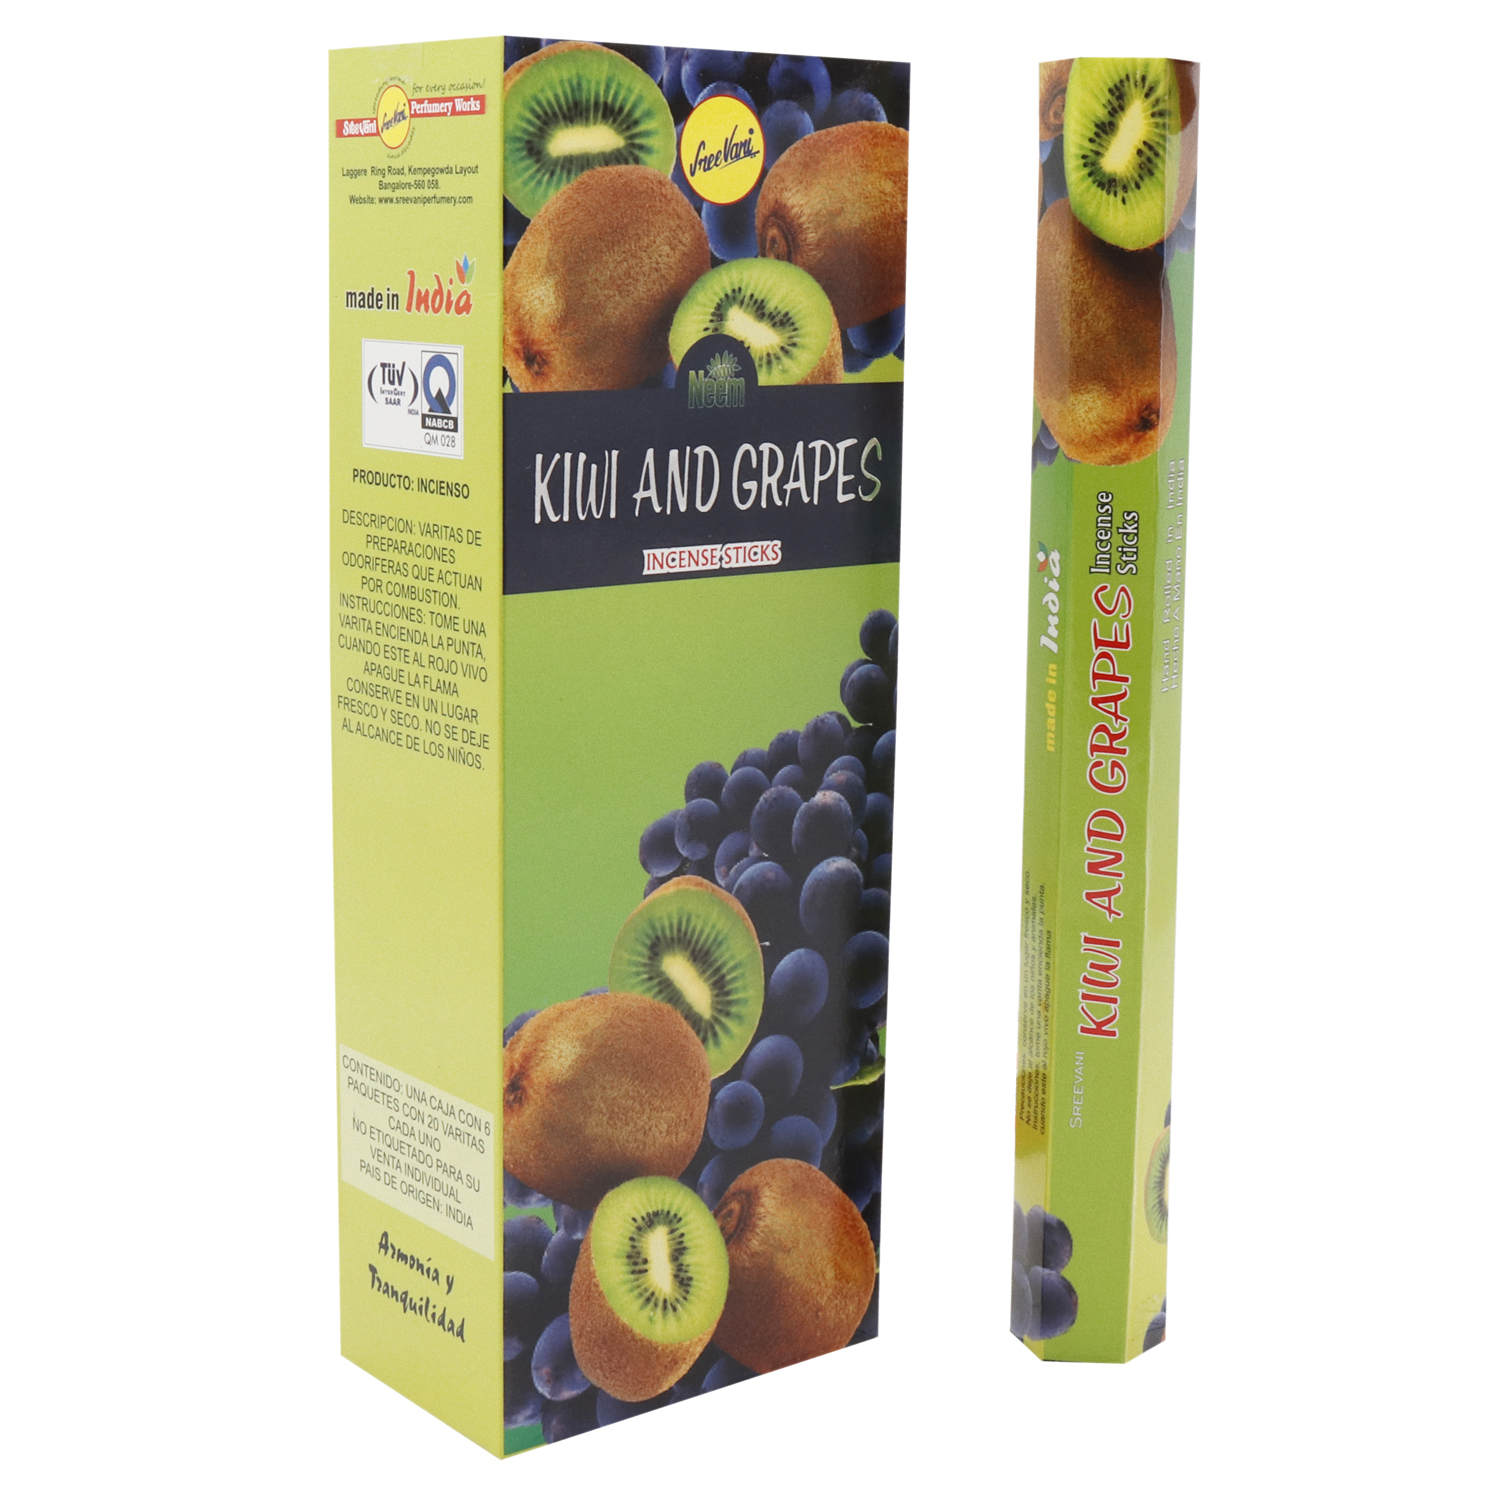 KIWI AND GRAPES / KIWI UVA